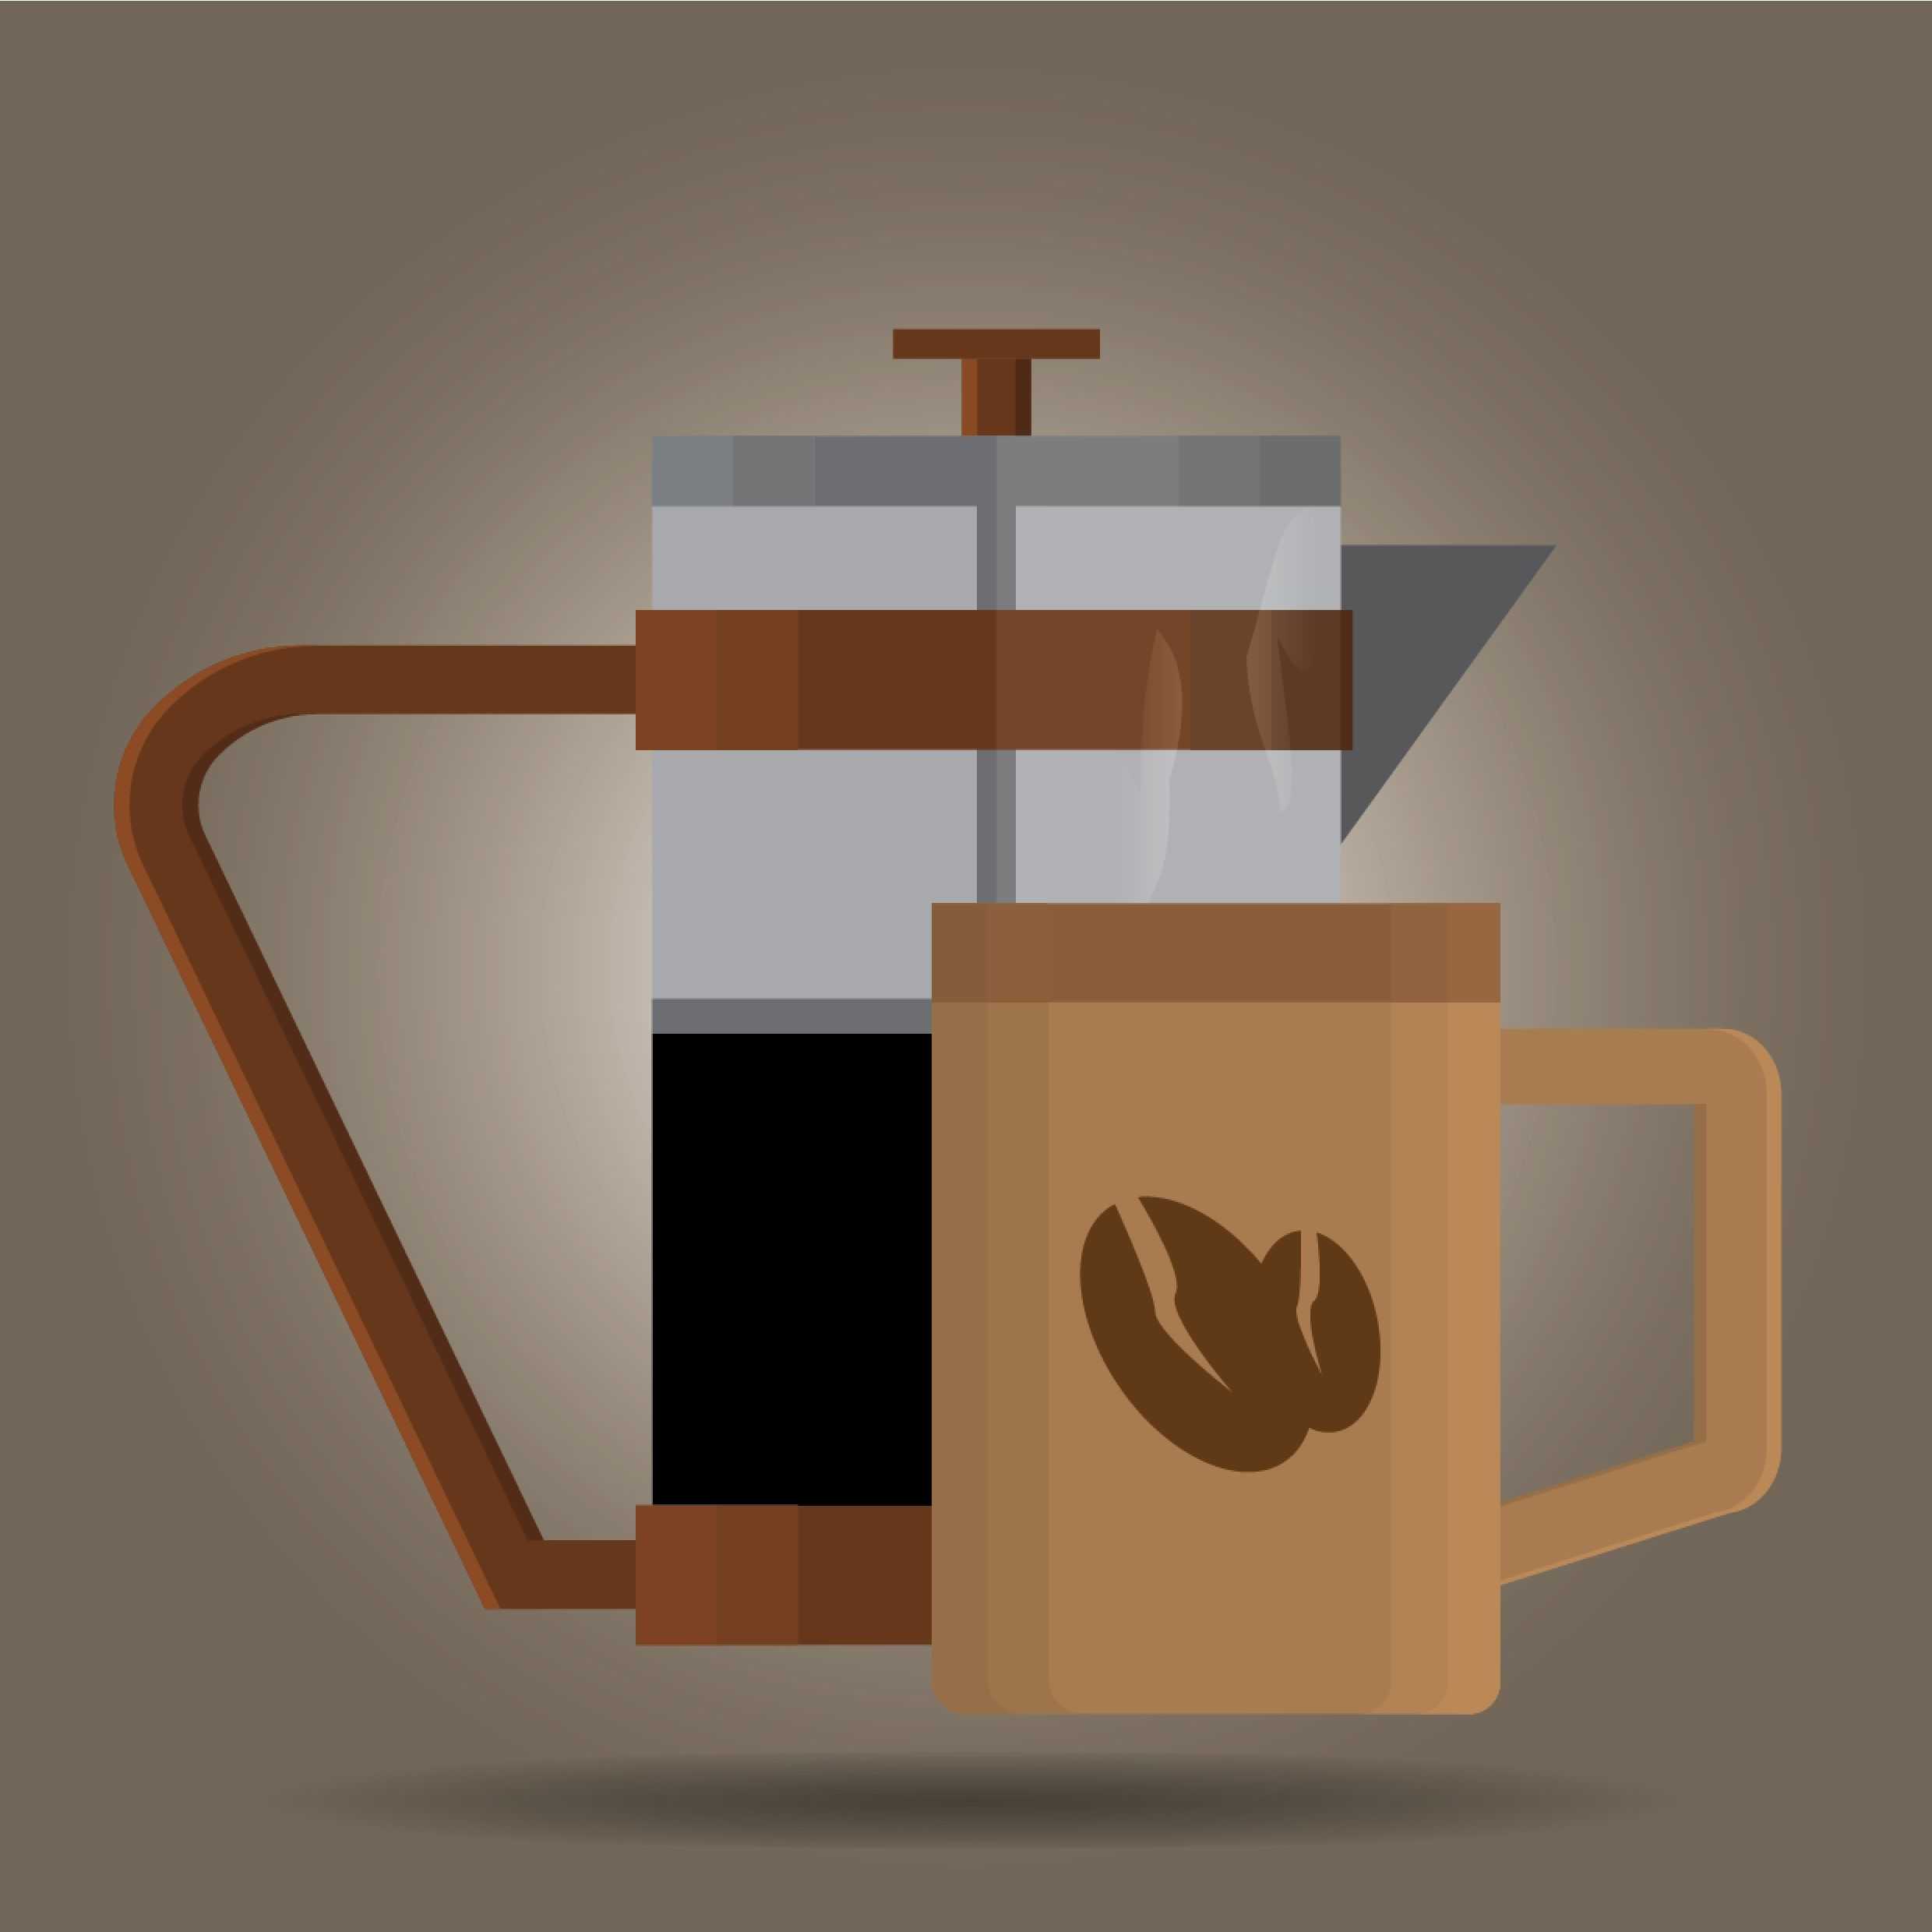 French Press Type of Coffee brewing